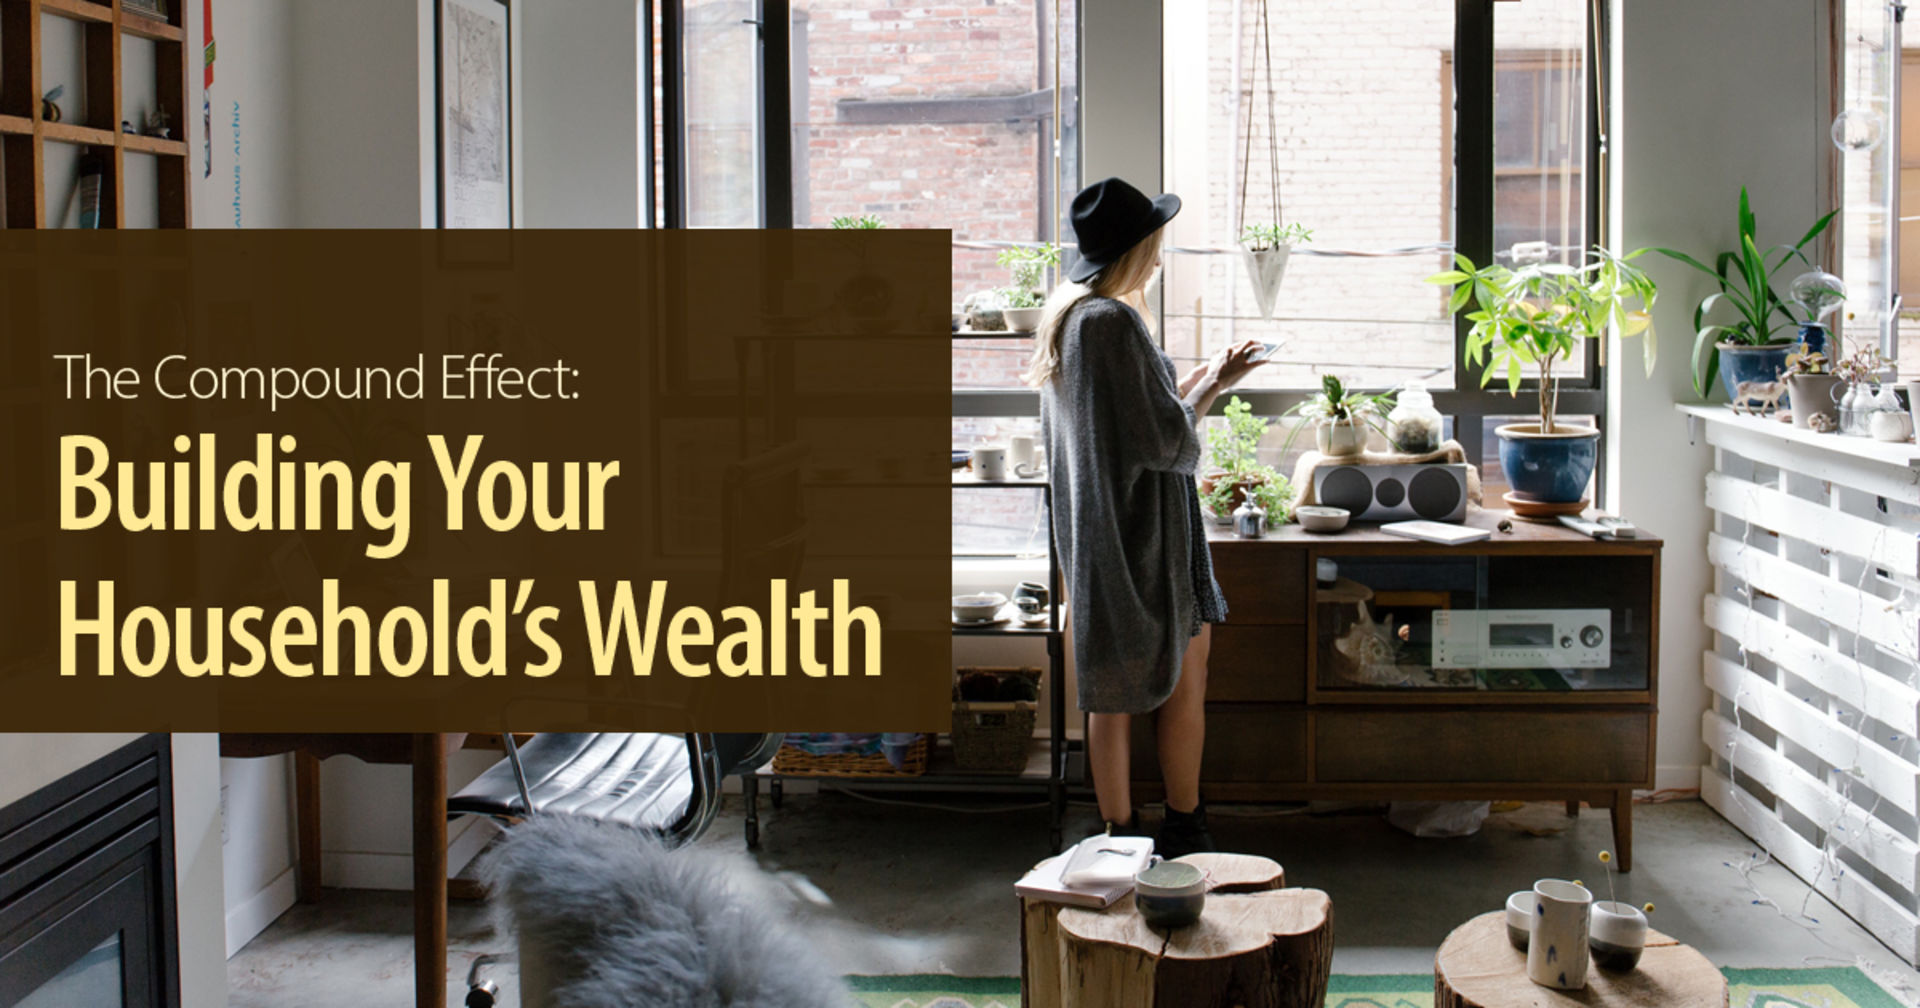 The Compound Effect: Building Your Household's Wealth​